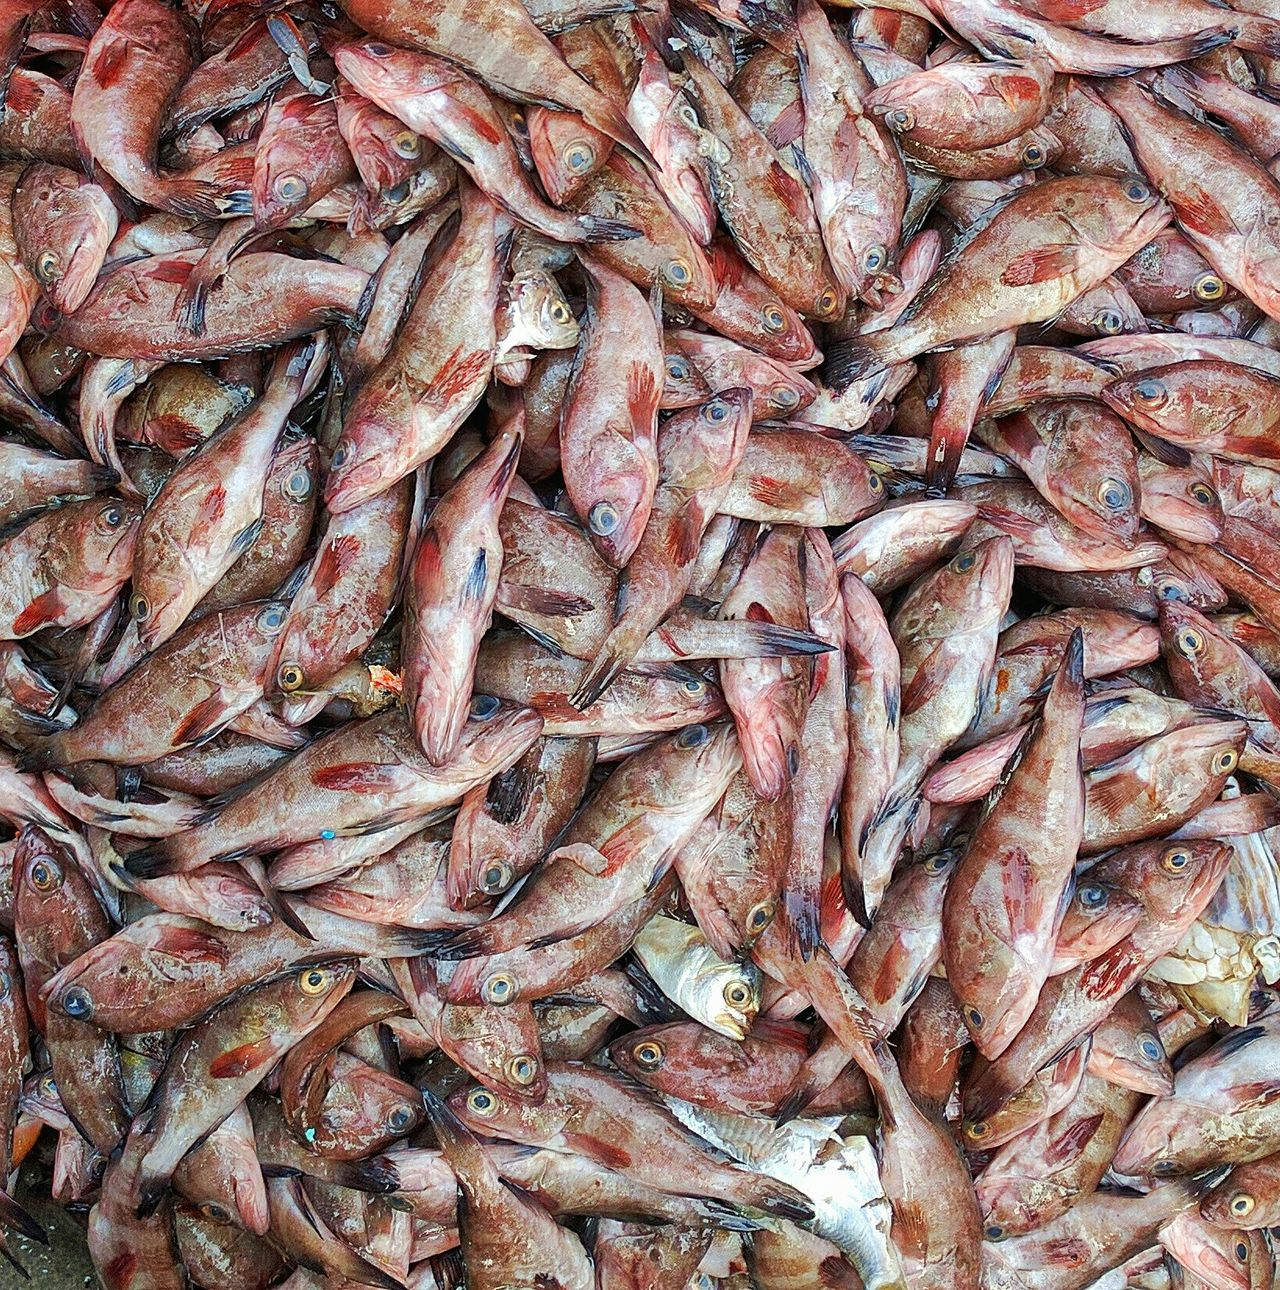 Fish Market Fish For Sale Fish Formation Fish DEAD FISH Mumbai Princess Docks Bhau Cha Dhakka